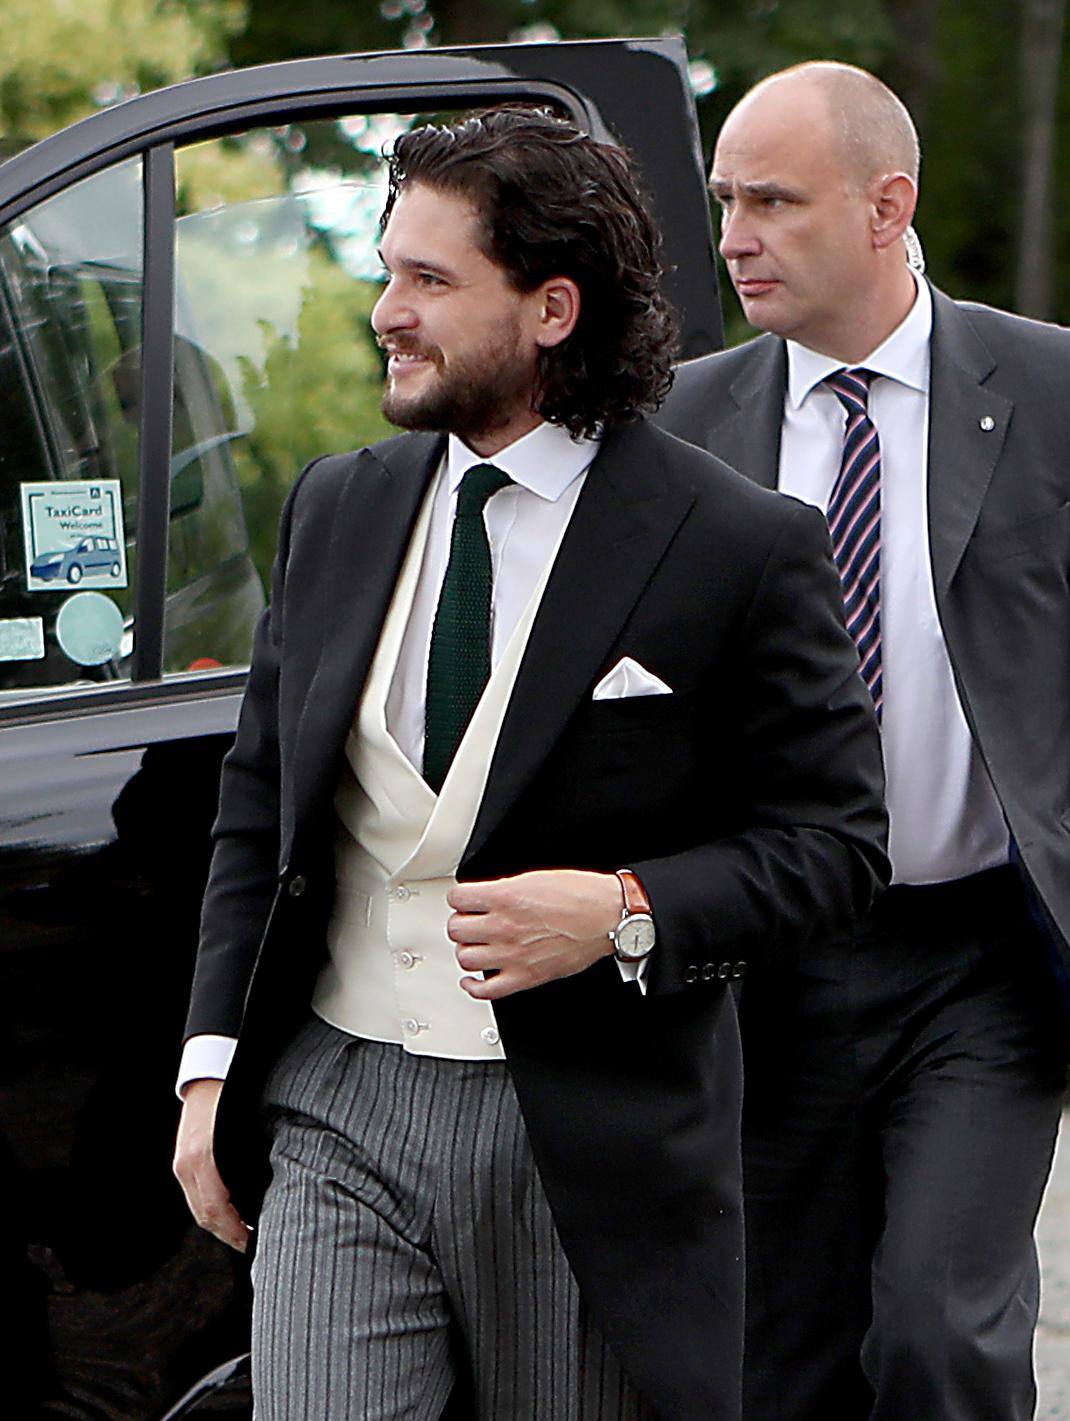 "Game of Thrones actor Kit Harington arrives, at Rayne Church, Kirkton of Rayne in Aberdeenshire, Scotland, Saturday June 23, 2018. Former ""Game of Thrones"" co-stars Kit Harington and Rose Leslie are marrying Saturday with a celebration at the bride's family castle in Scotland. The couple and guests arrived at Rayne Church, close to the 900-year-old Wardhill Castle in northeast Scotland, which is owned by Leslie's family. (Jane Barlow/PA via AP)"